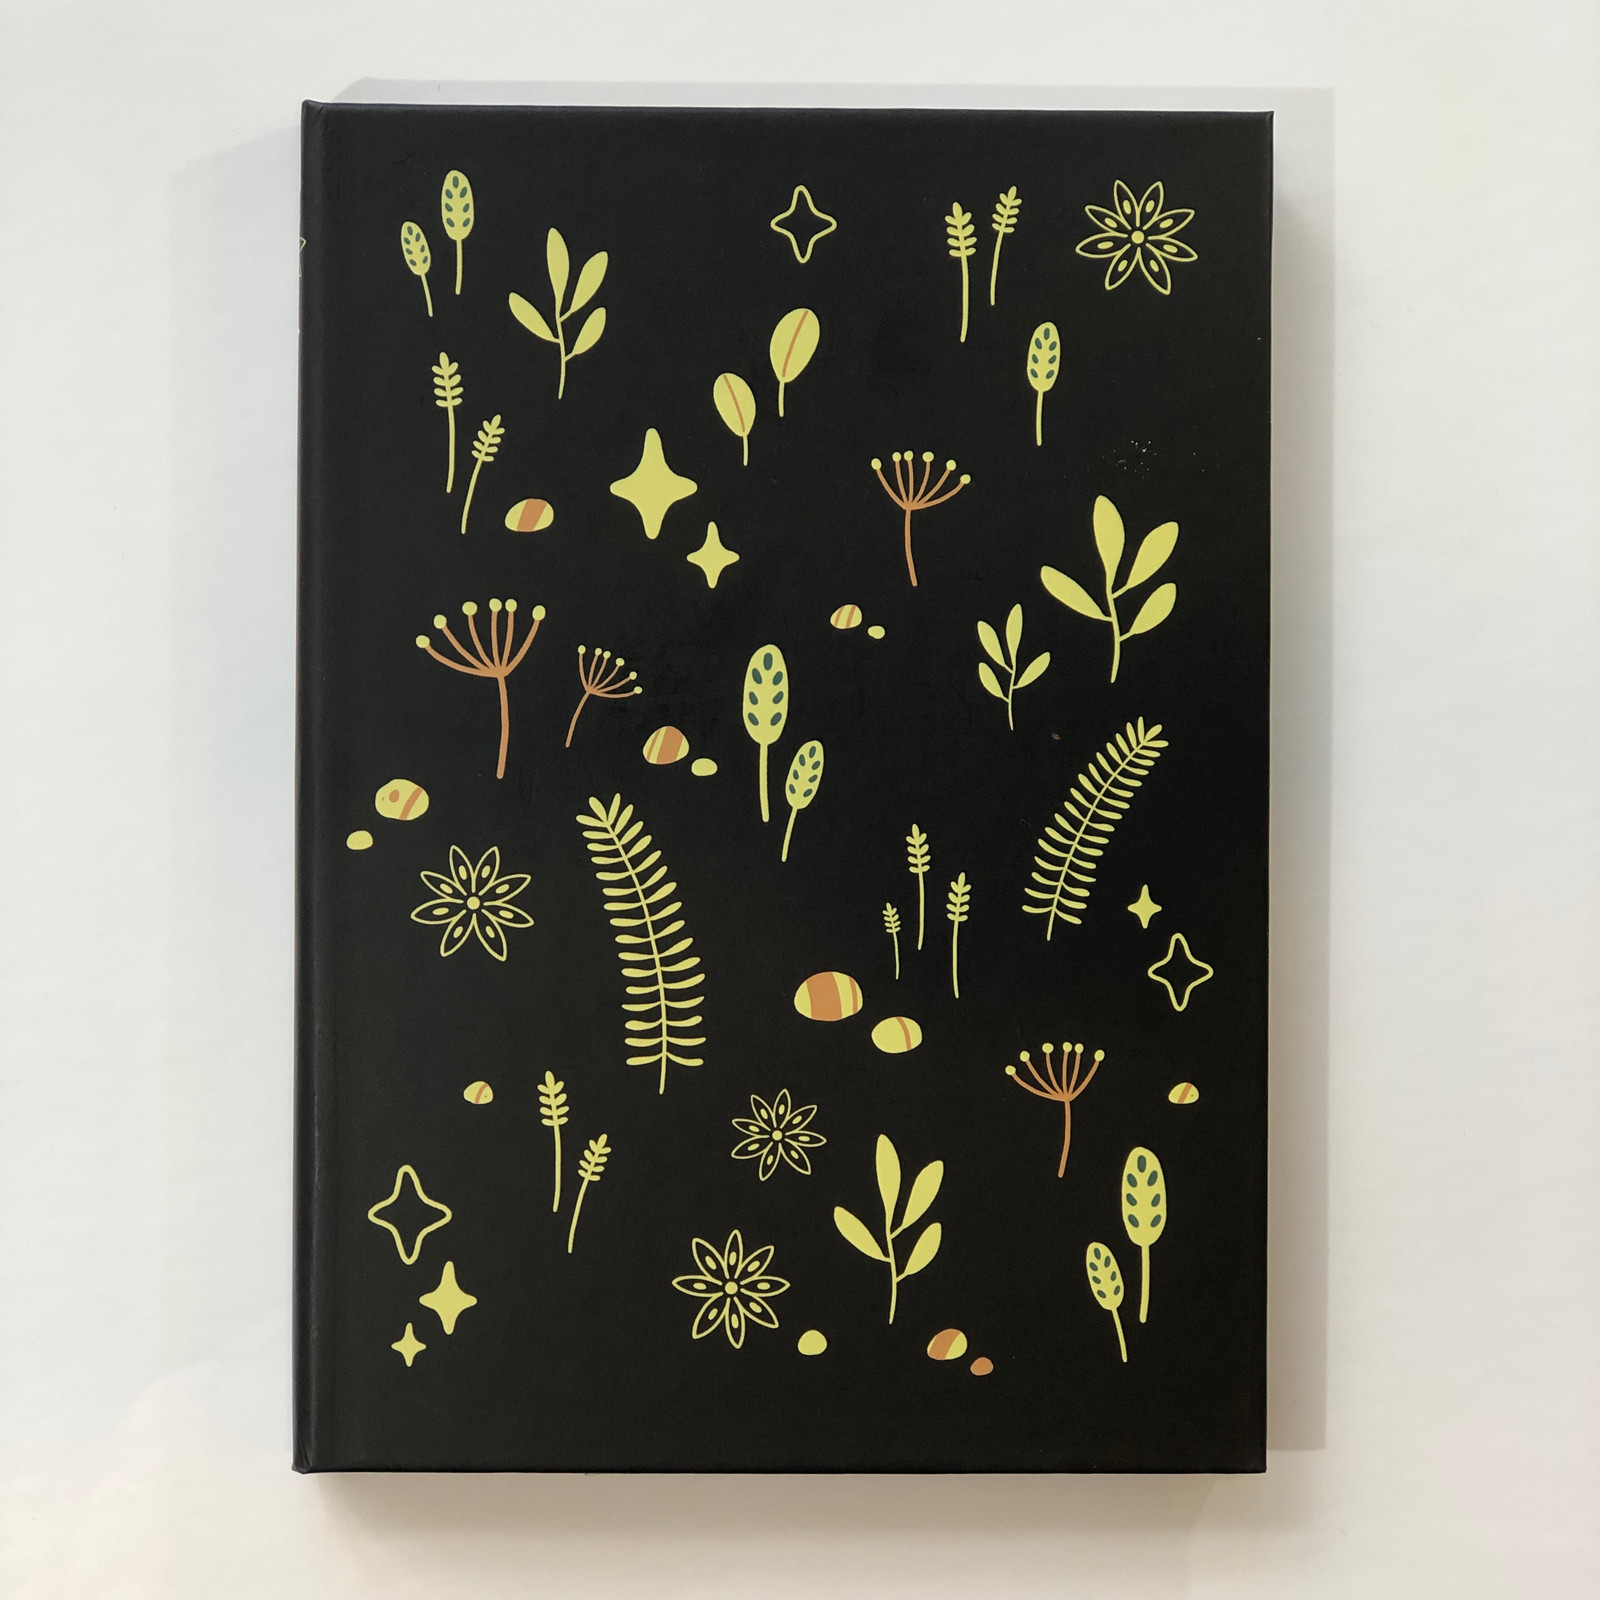 Memmo 2021 Diary - Apothecary *LIMITED EDITION*